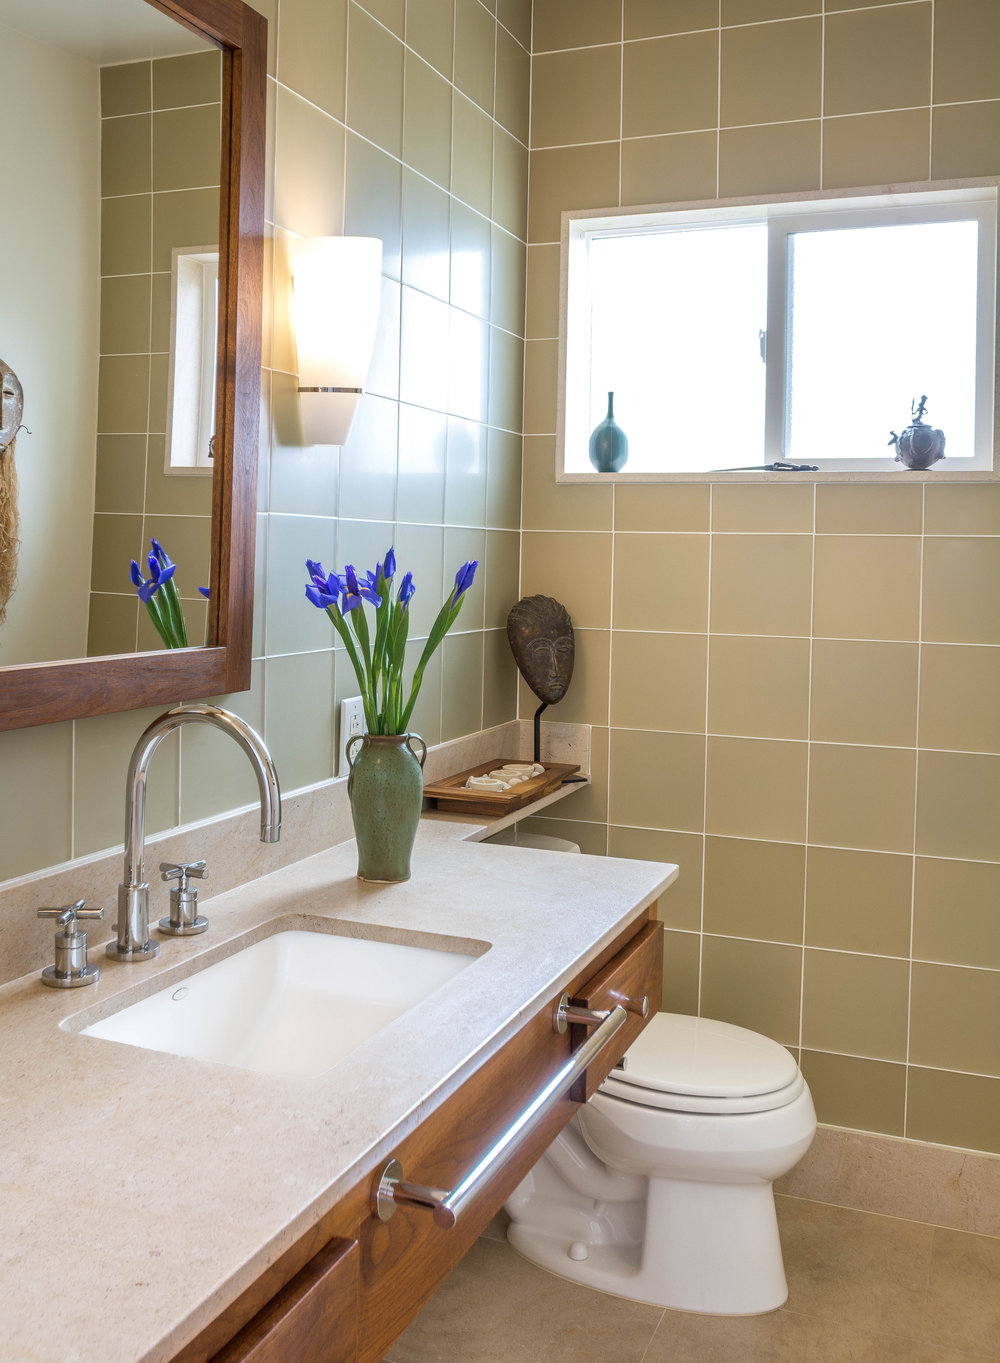 Bathroom remodel using glass tile and limestone